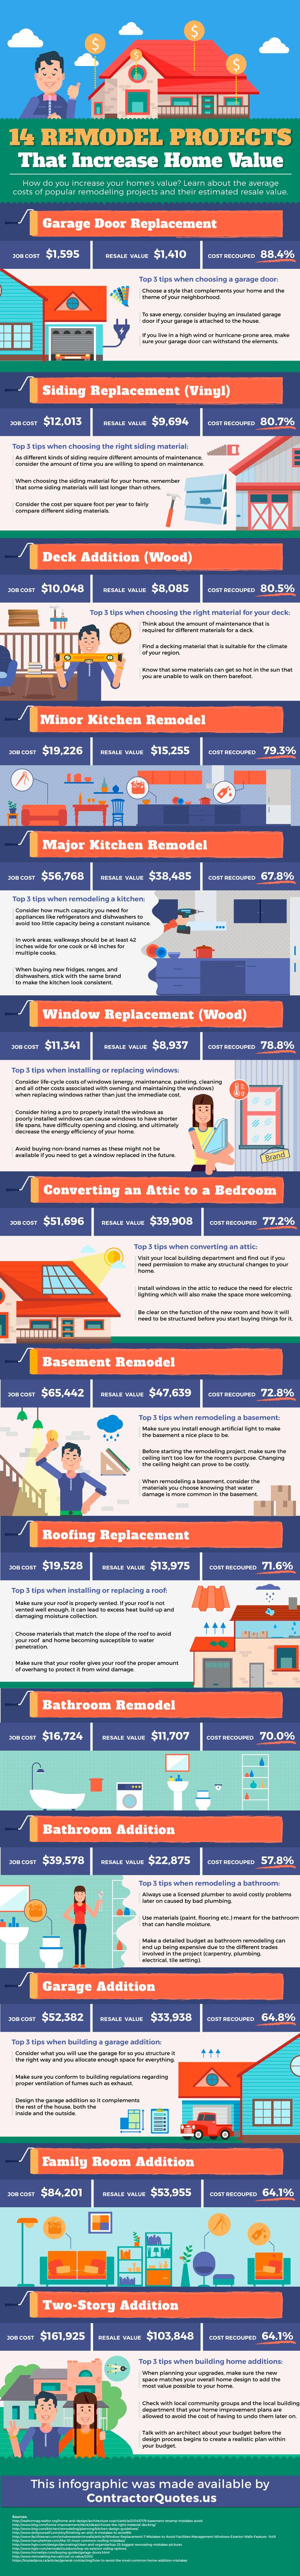 12 Best Everyday Home Garden Tips Projects Images On Pinterest Search Results For Quotmosquito Repeller Circuitquot Insane Design Ideas Your Improvement Project Learn More By Visiting The